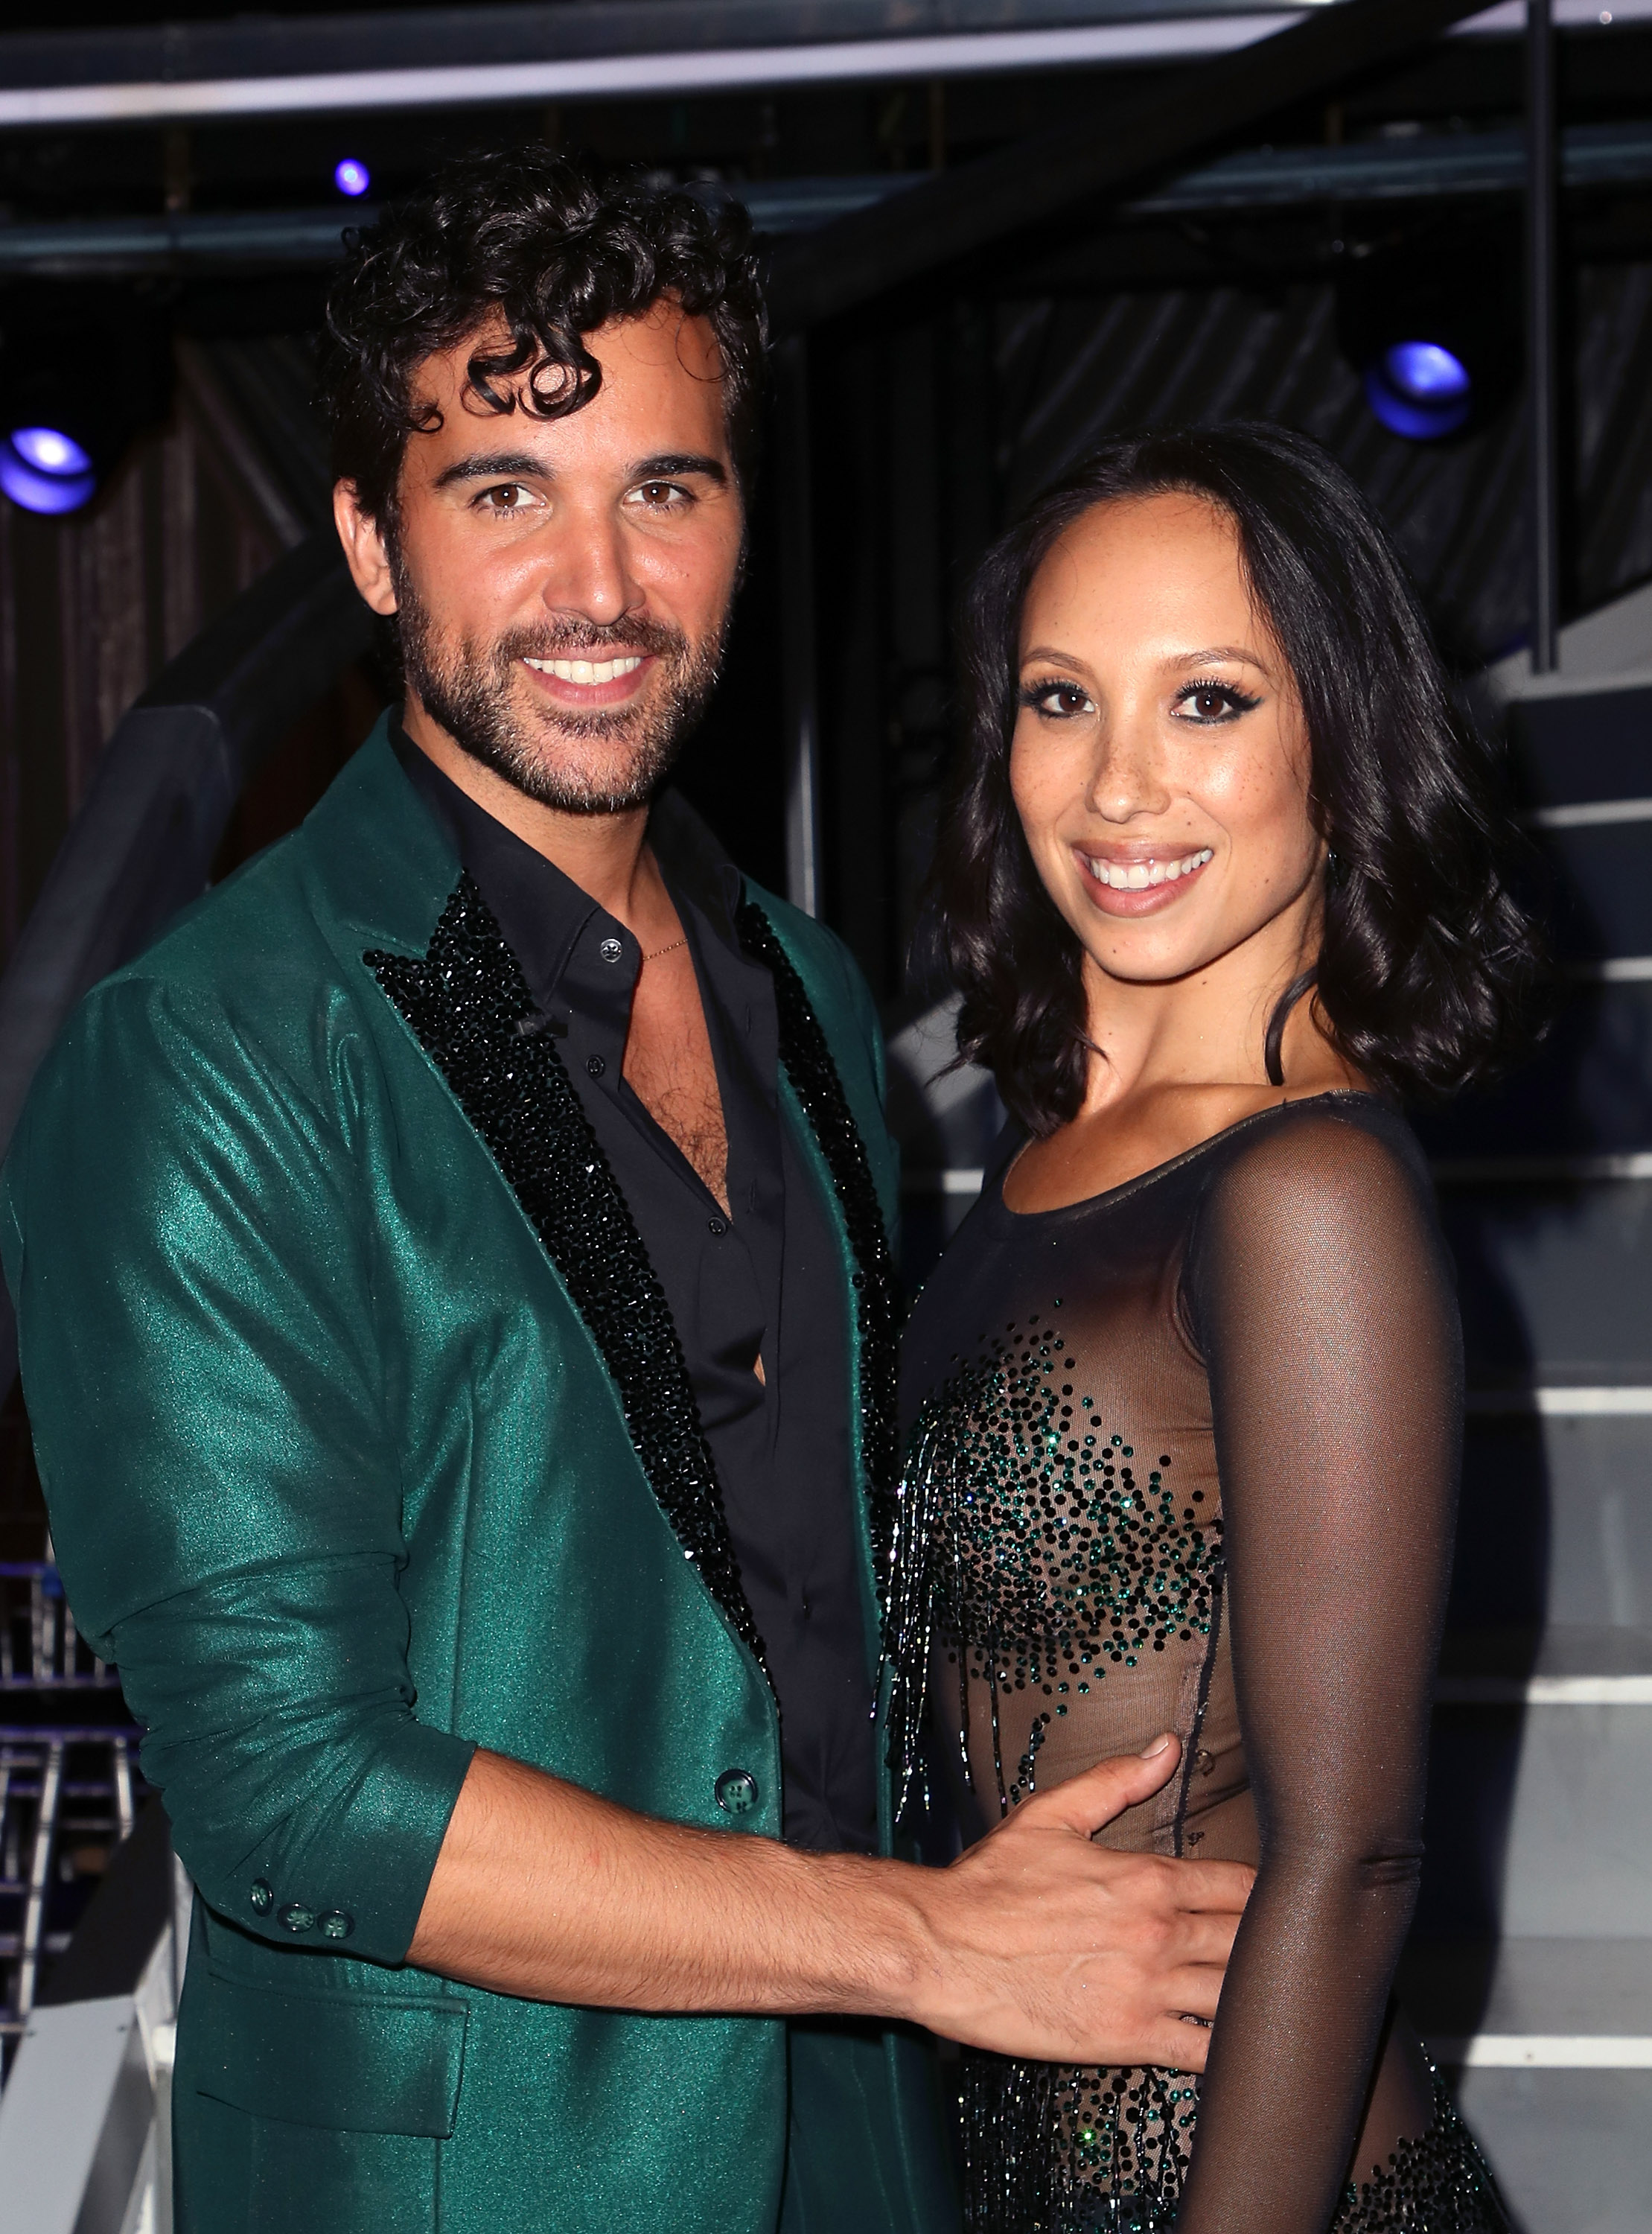 Juan Pablo Di Pace (L) and Cheryl Burke pose at 'Dancing with the Stars' Season 27 at CBS Televison City on September 24, 2018 in Los Angeles, California.